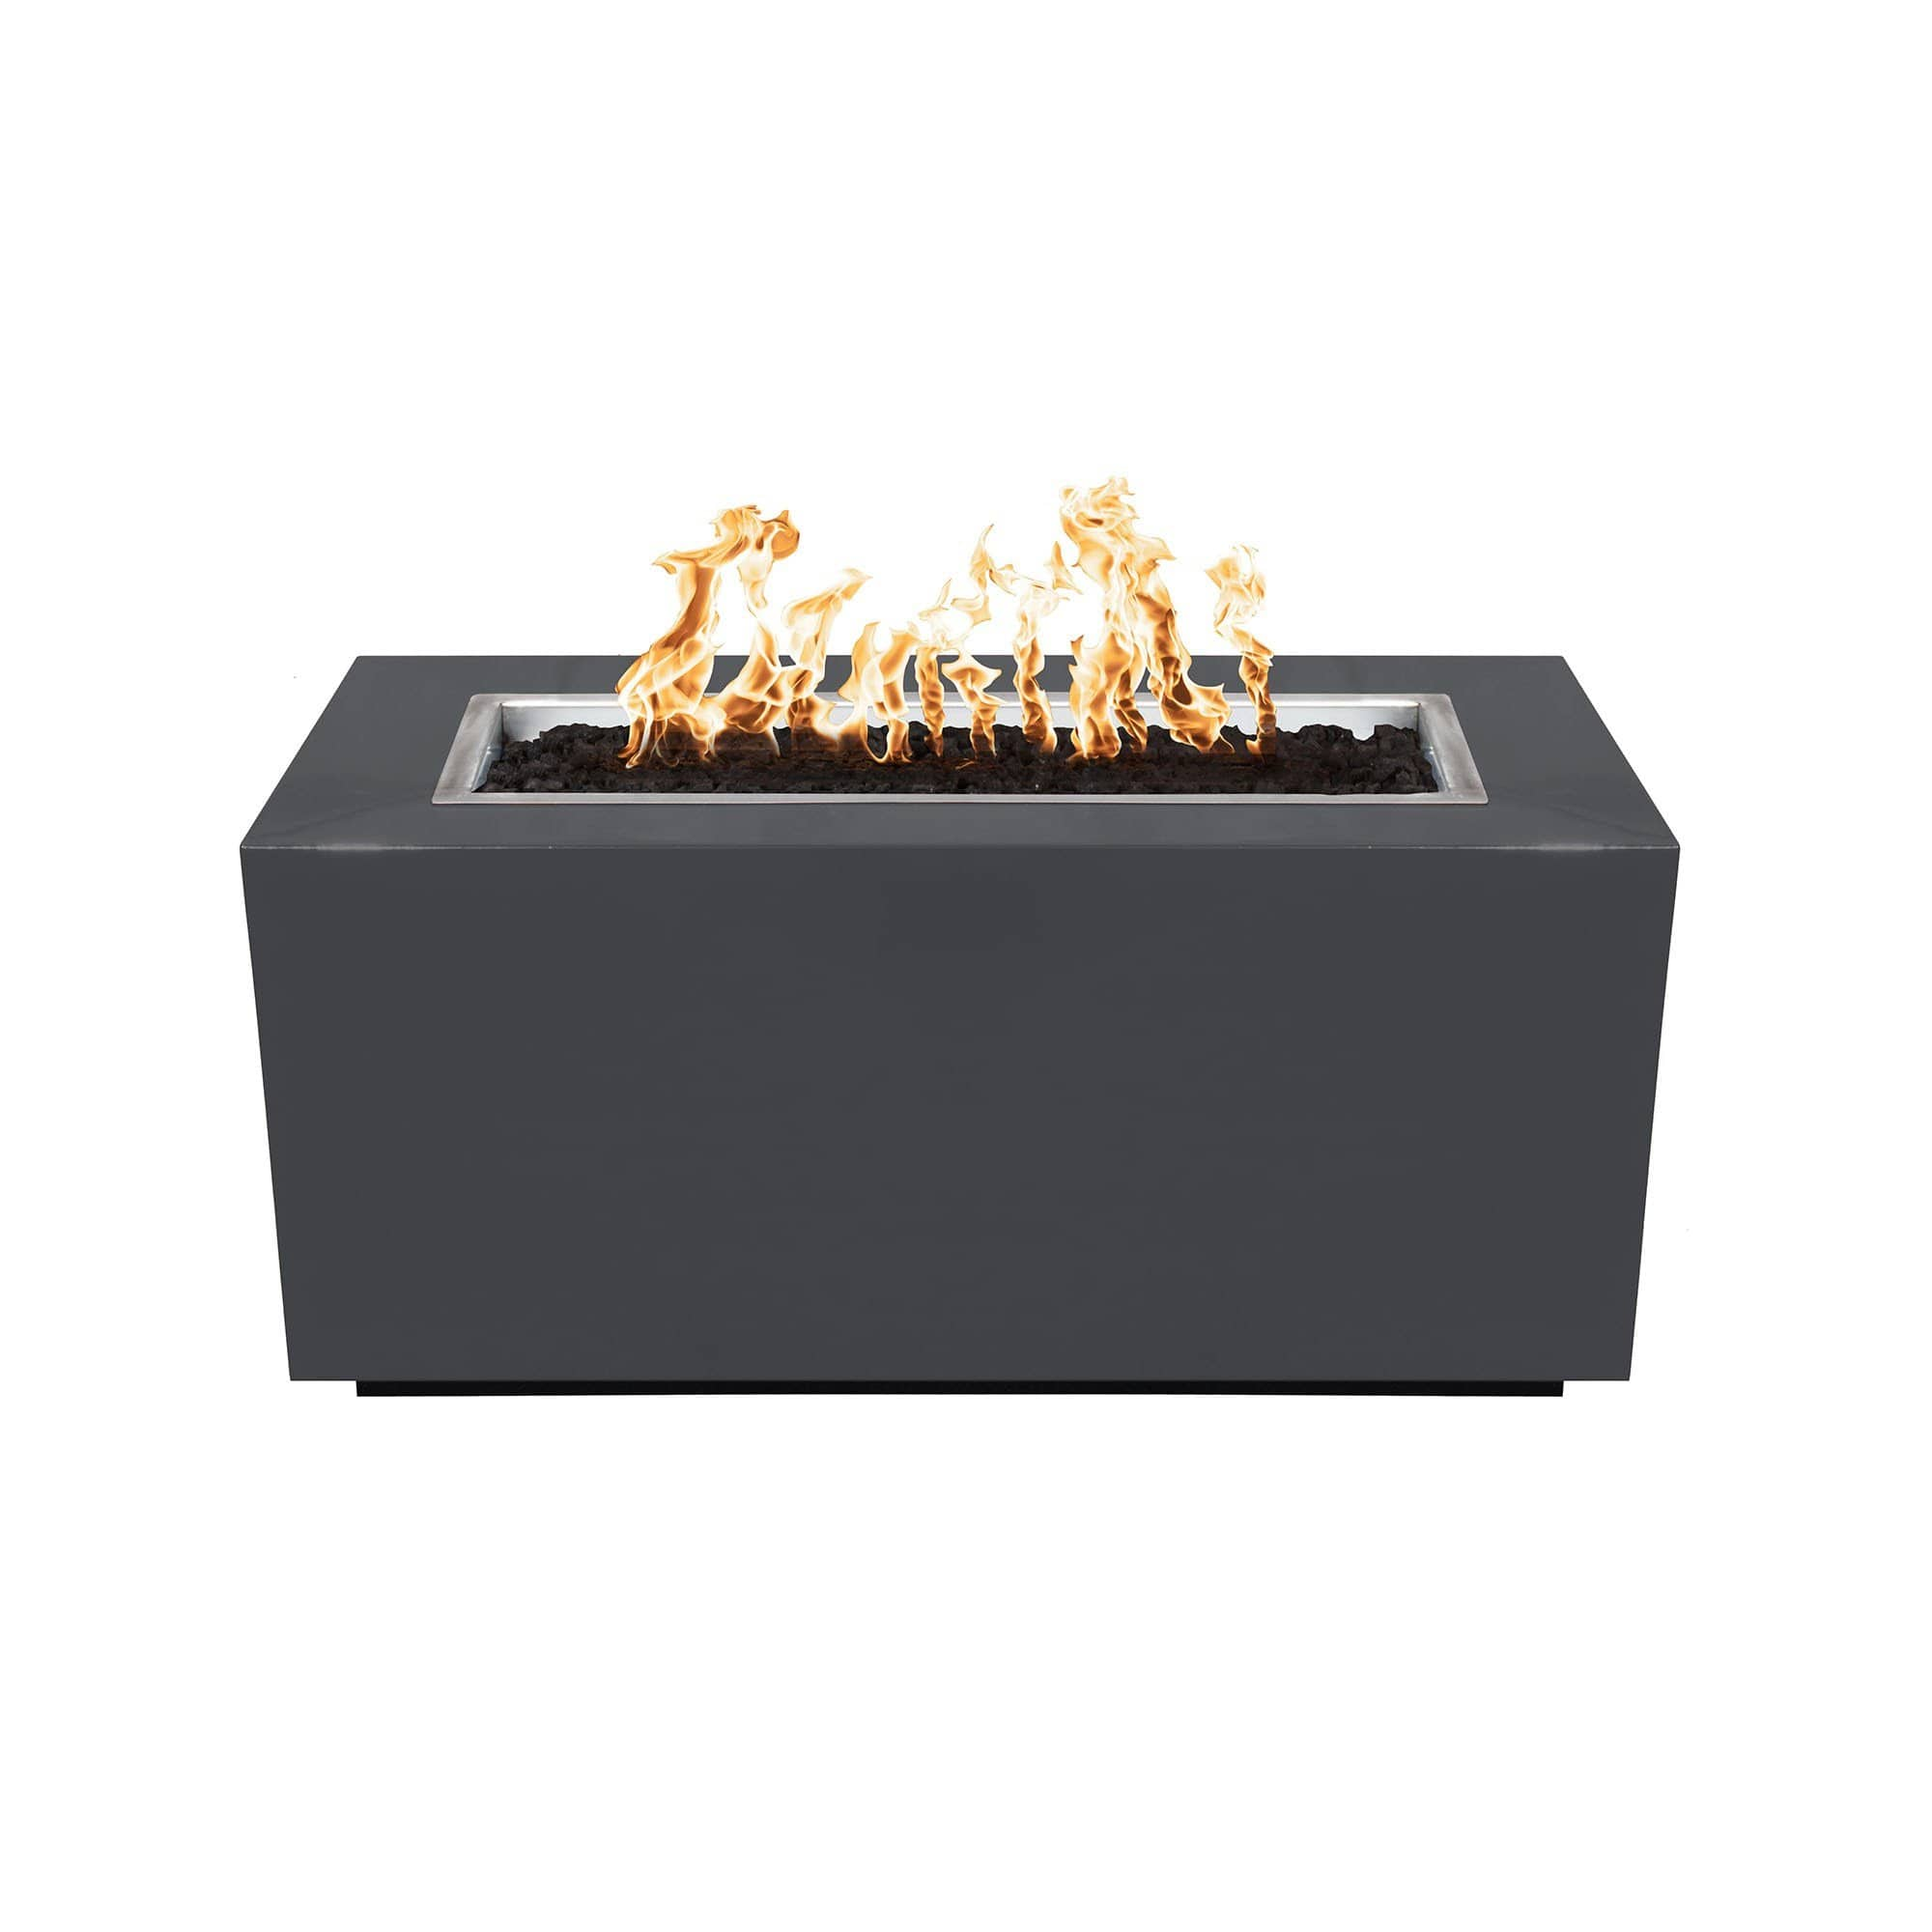 The Outdoor Plus Pismo Metal Fire Pit OPT-R8424 Fire Pit The Outdoor Plus Gray Powdercoat Electronic Ignition Natural Gas